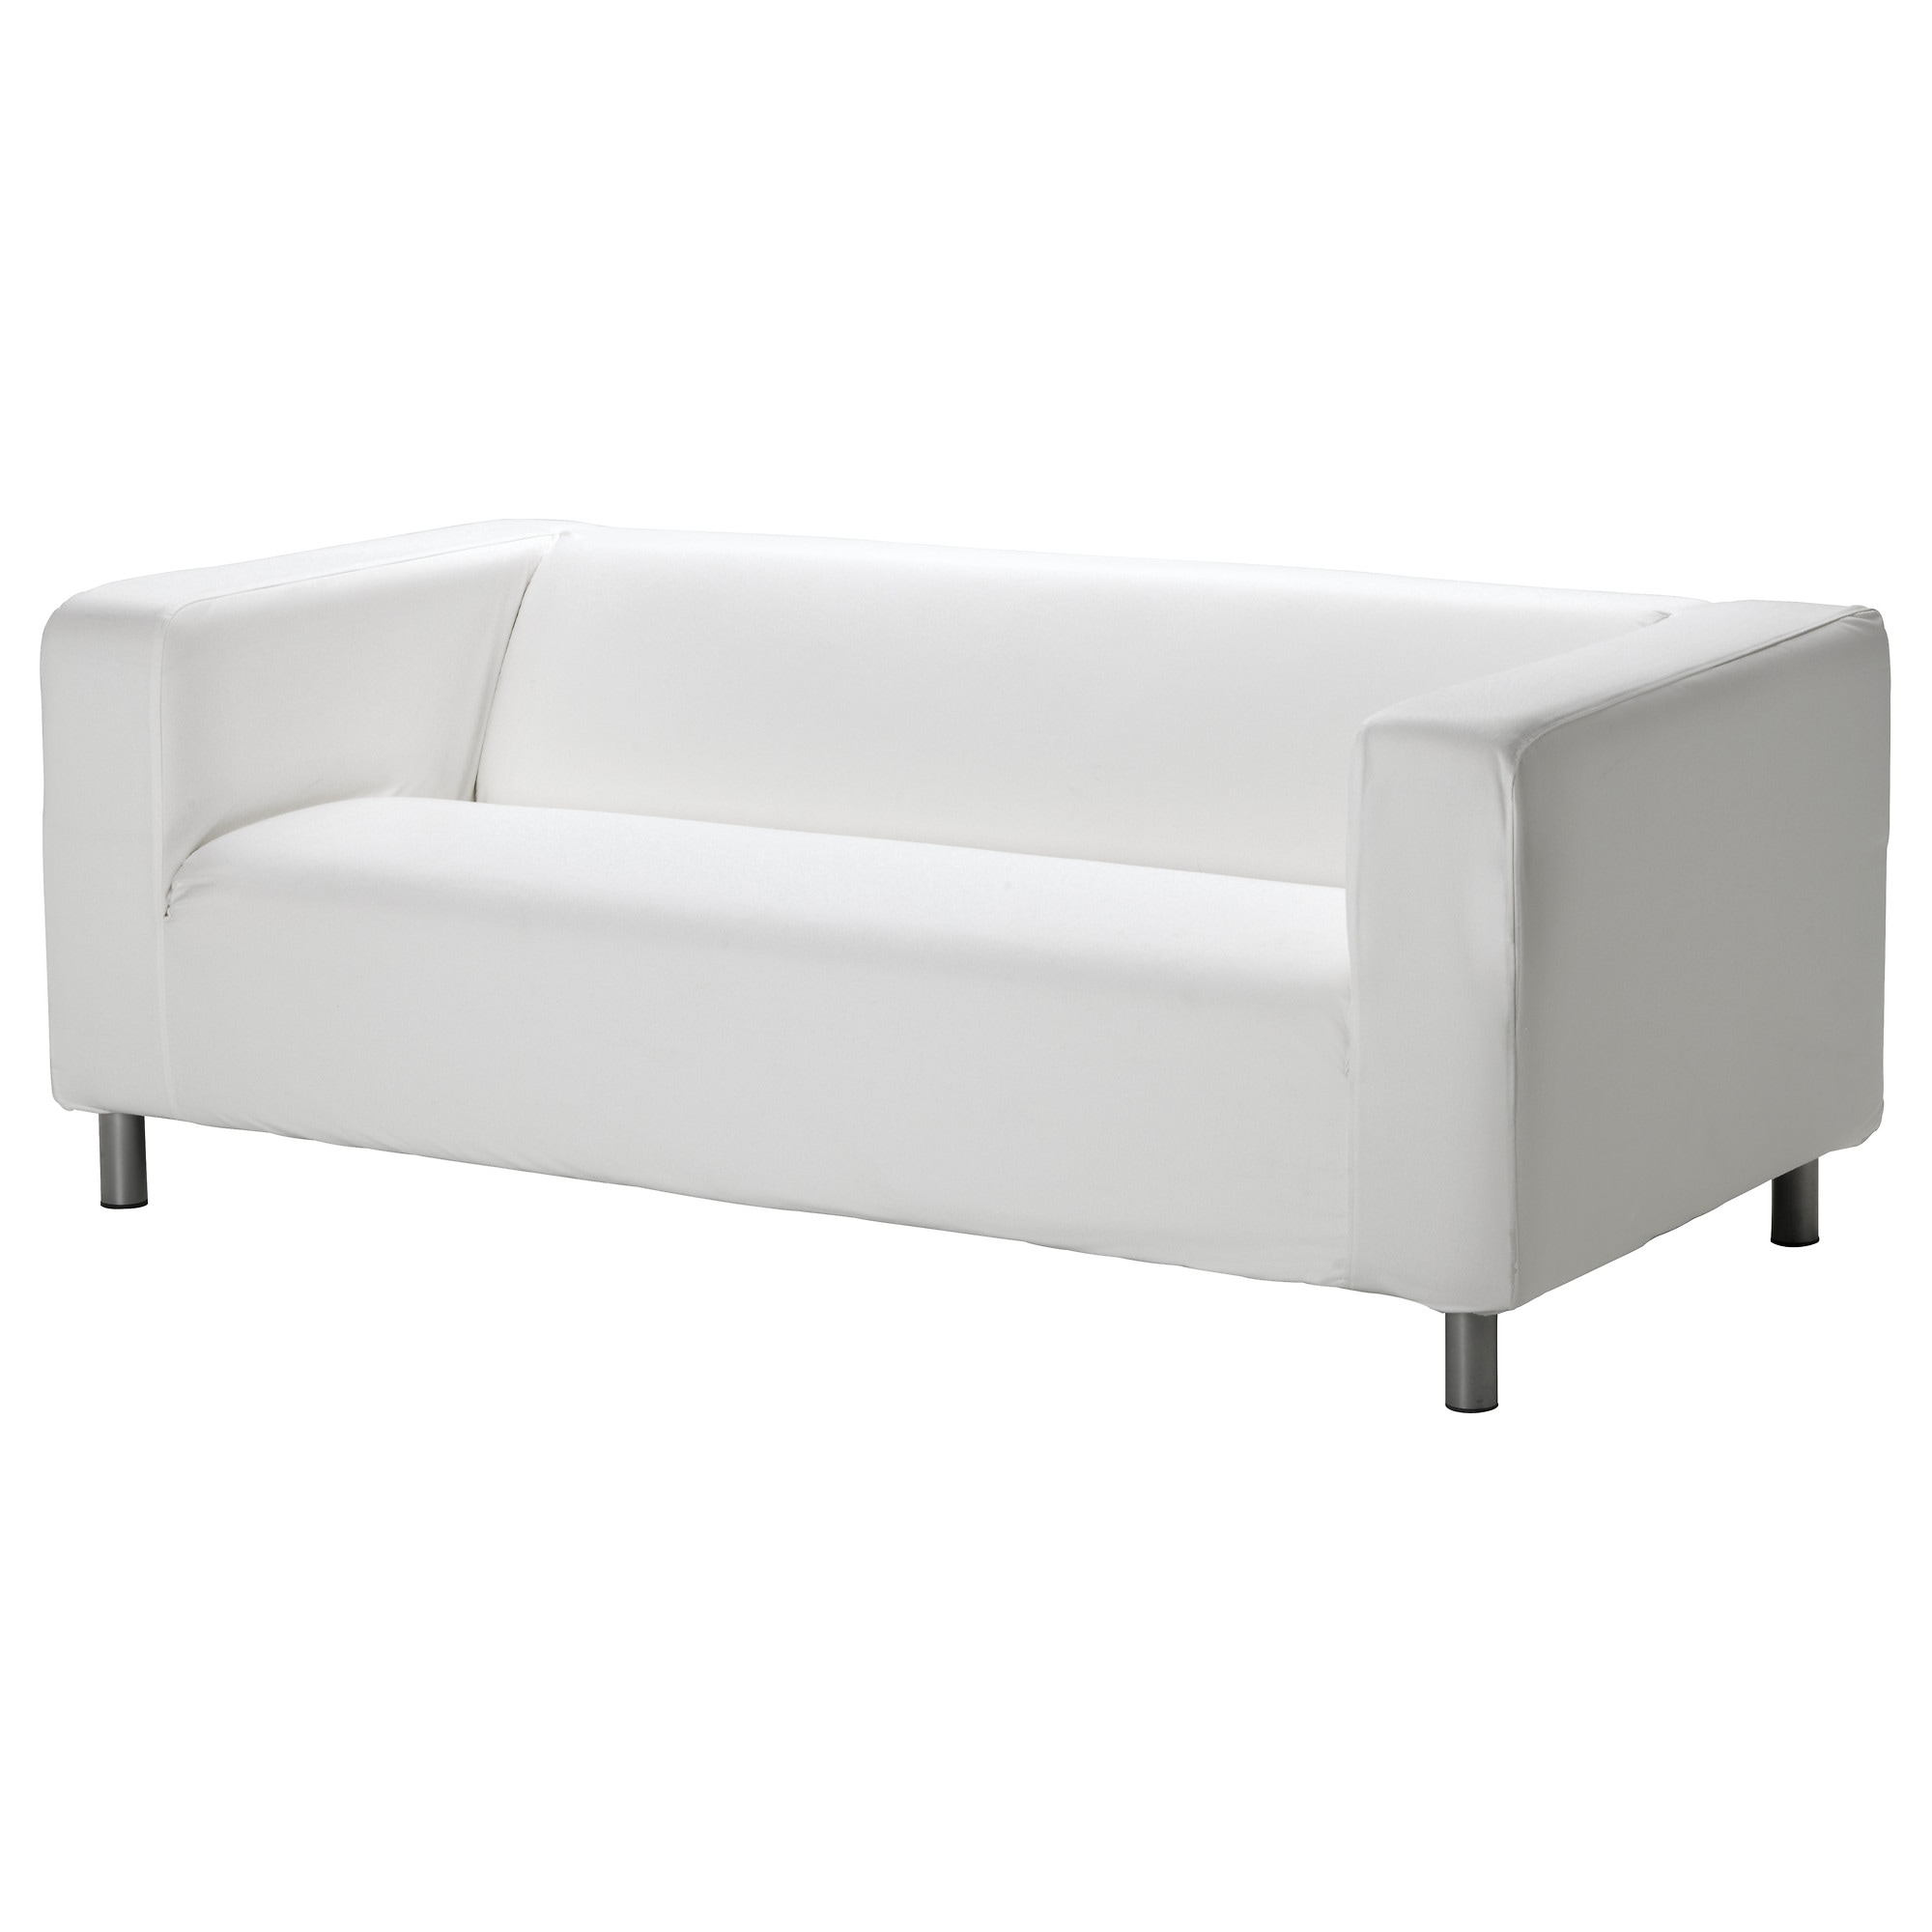 klippan loveseat  granån white  ikea - inter ikea systems bv     privacy policy